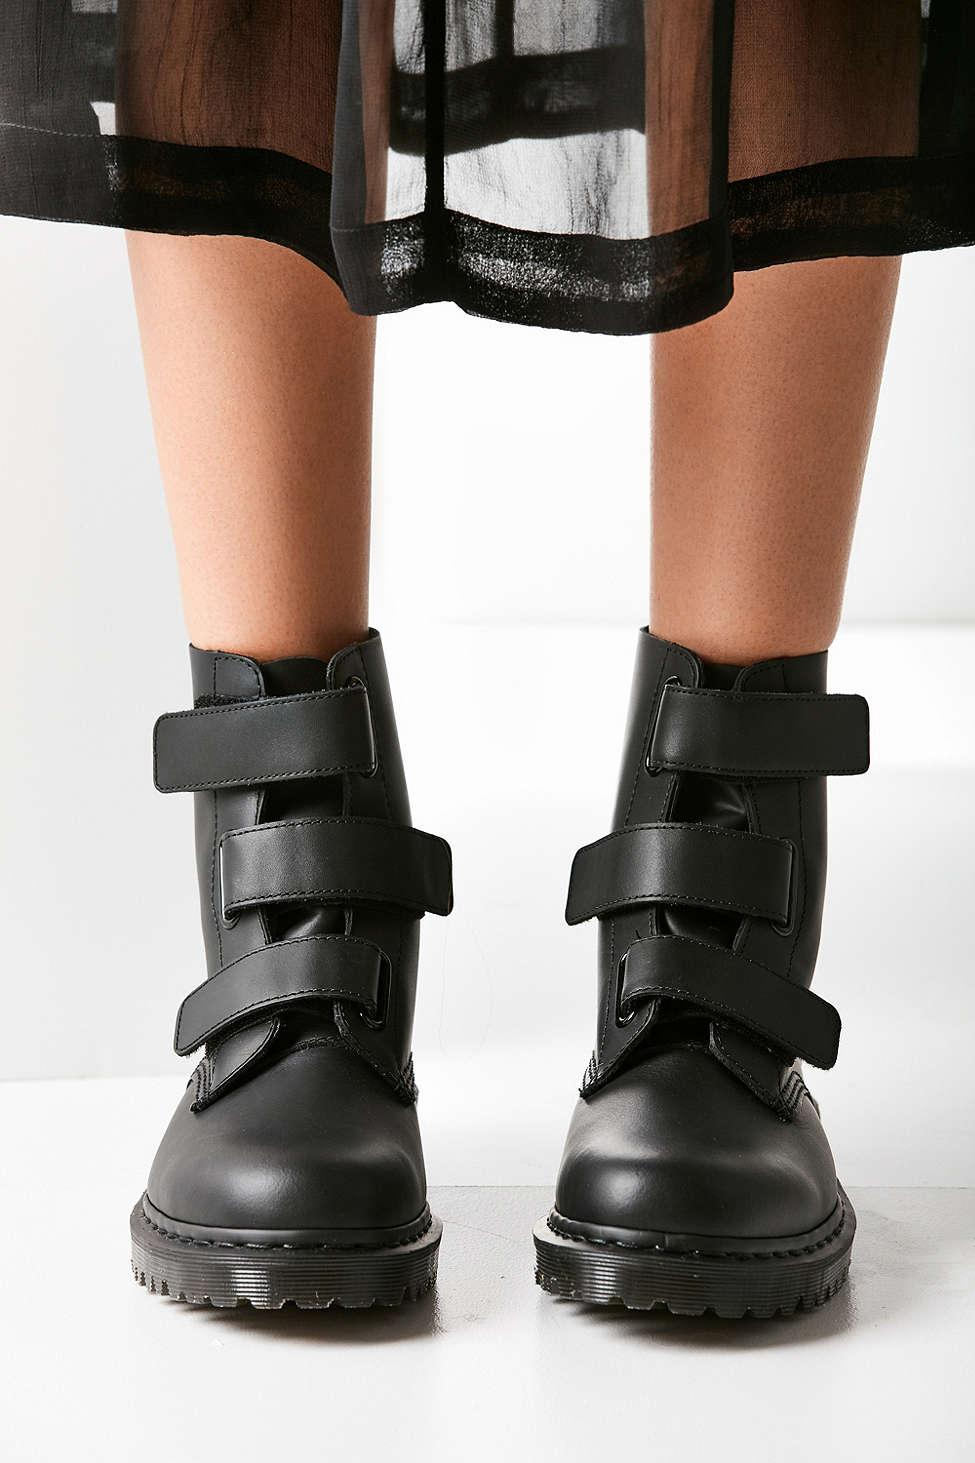 how to clean dr martens leather boots